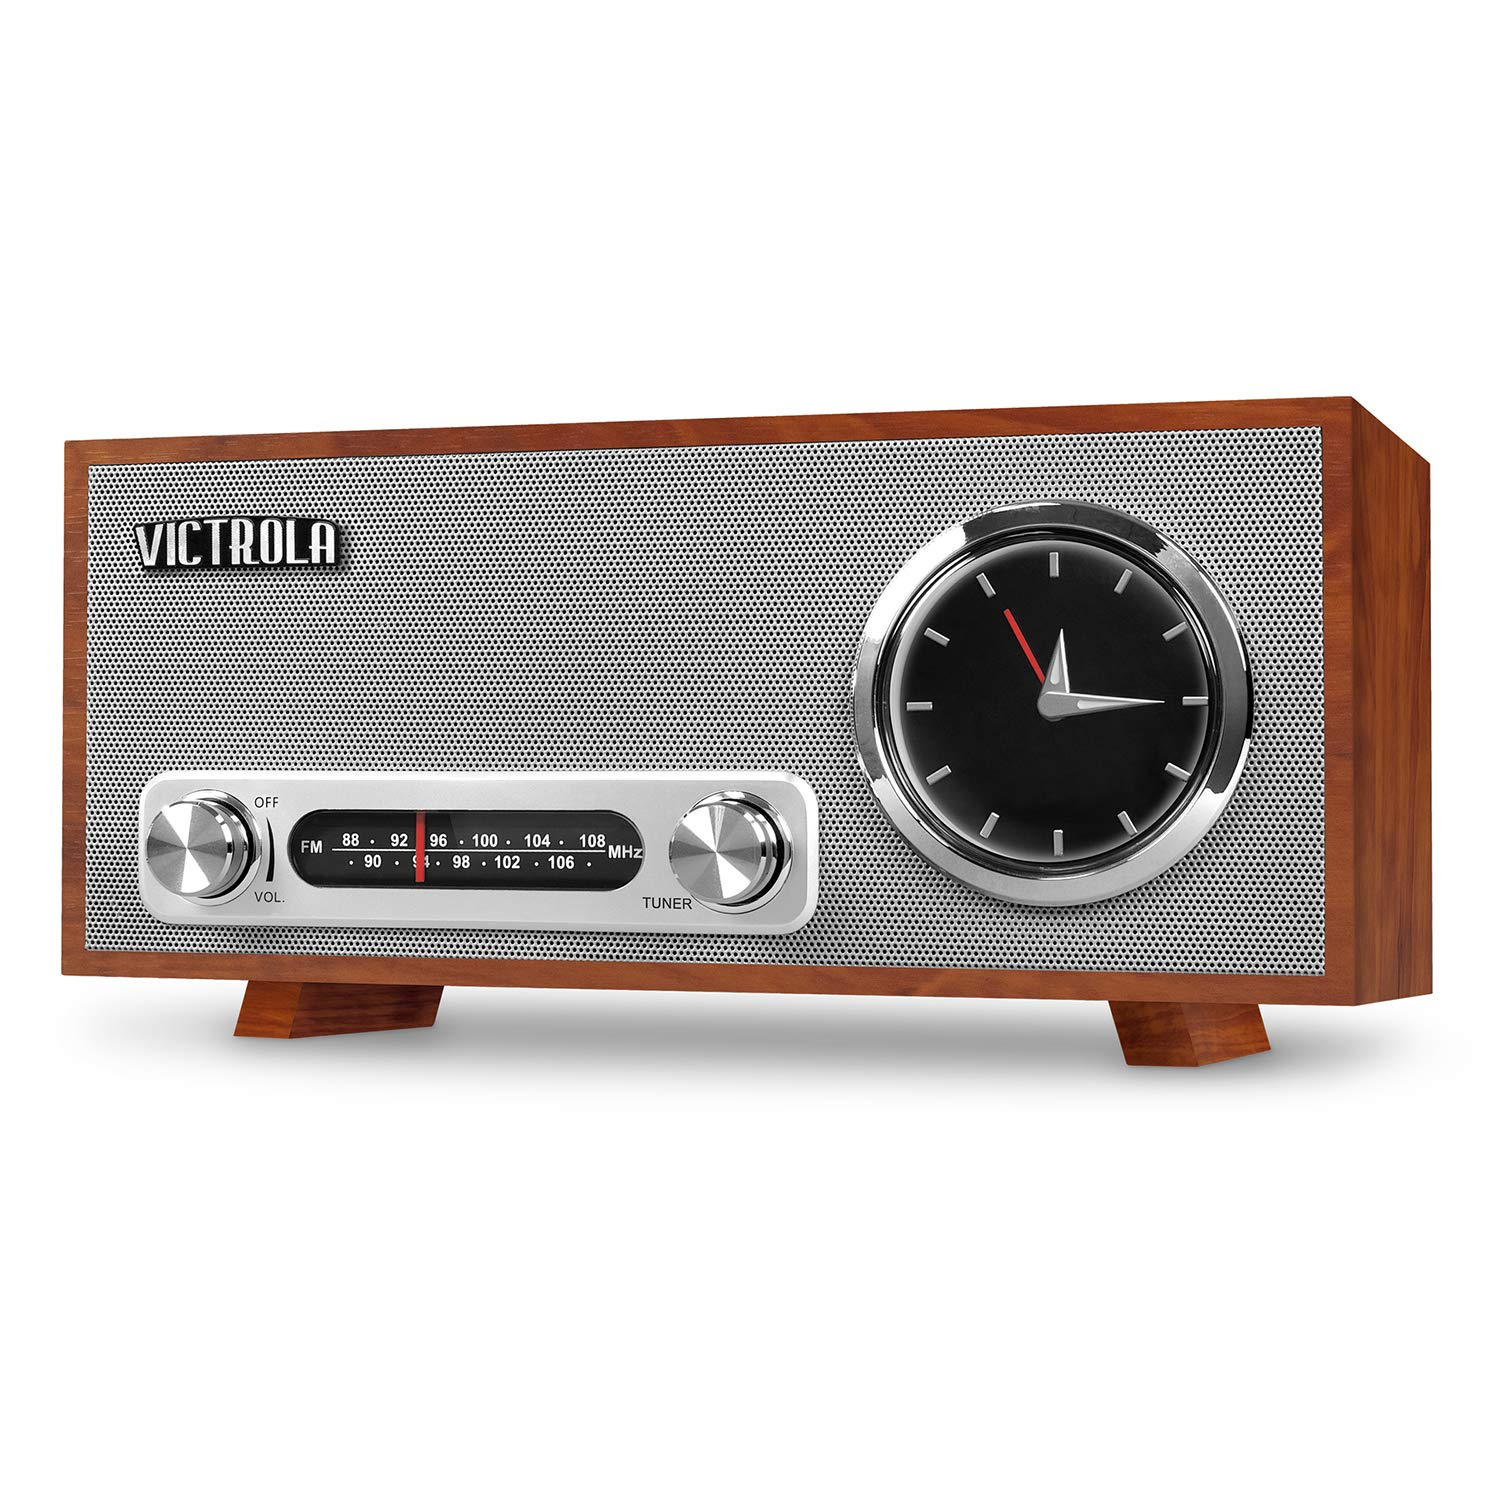 Victrola Bluetooth Analog Clock Stereo with FM Radio and USB Charging, Mahogany